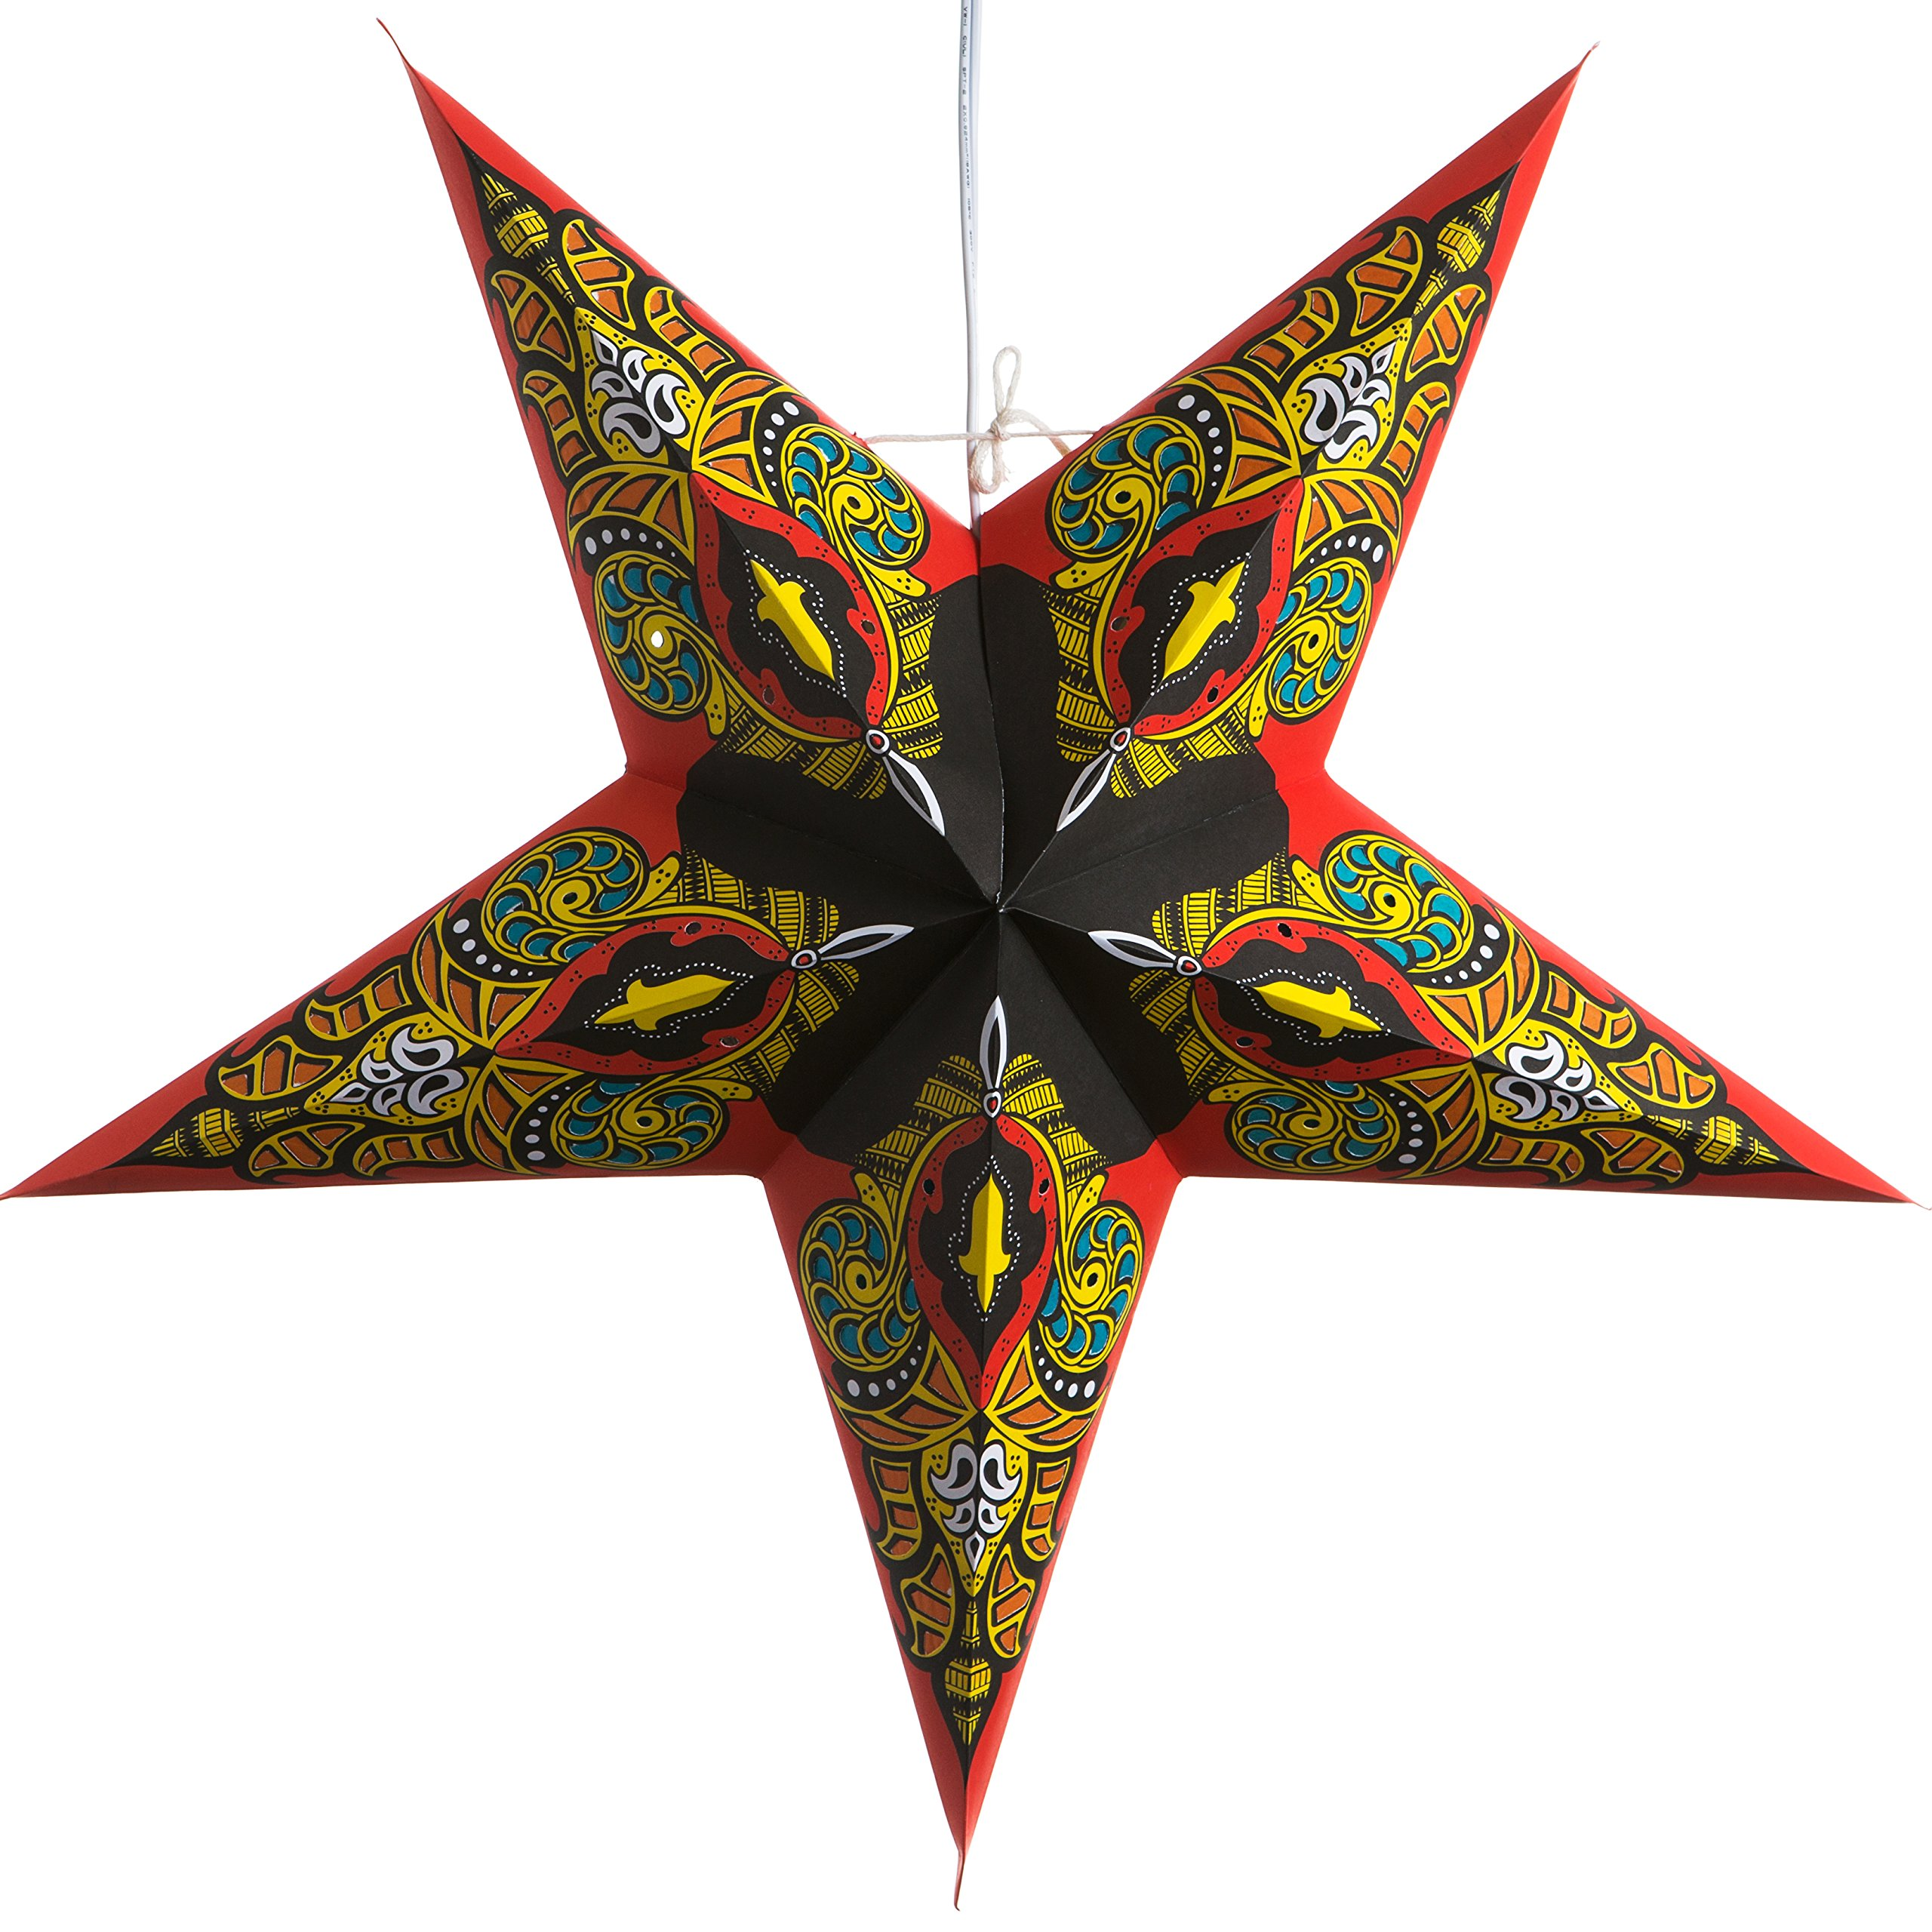 Red Mango Paper Star Lantern with 12 Foot Power Cord Included by Hometown Evolution, Inc. (Image #1)